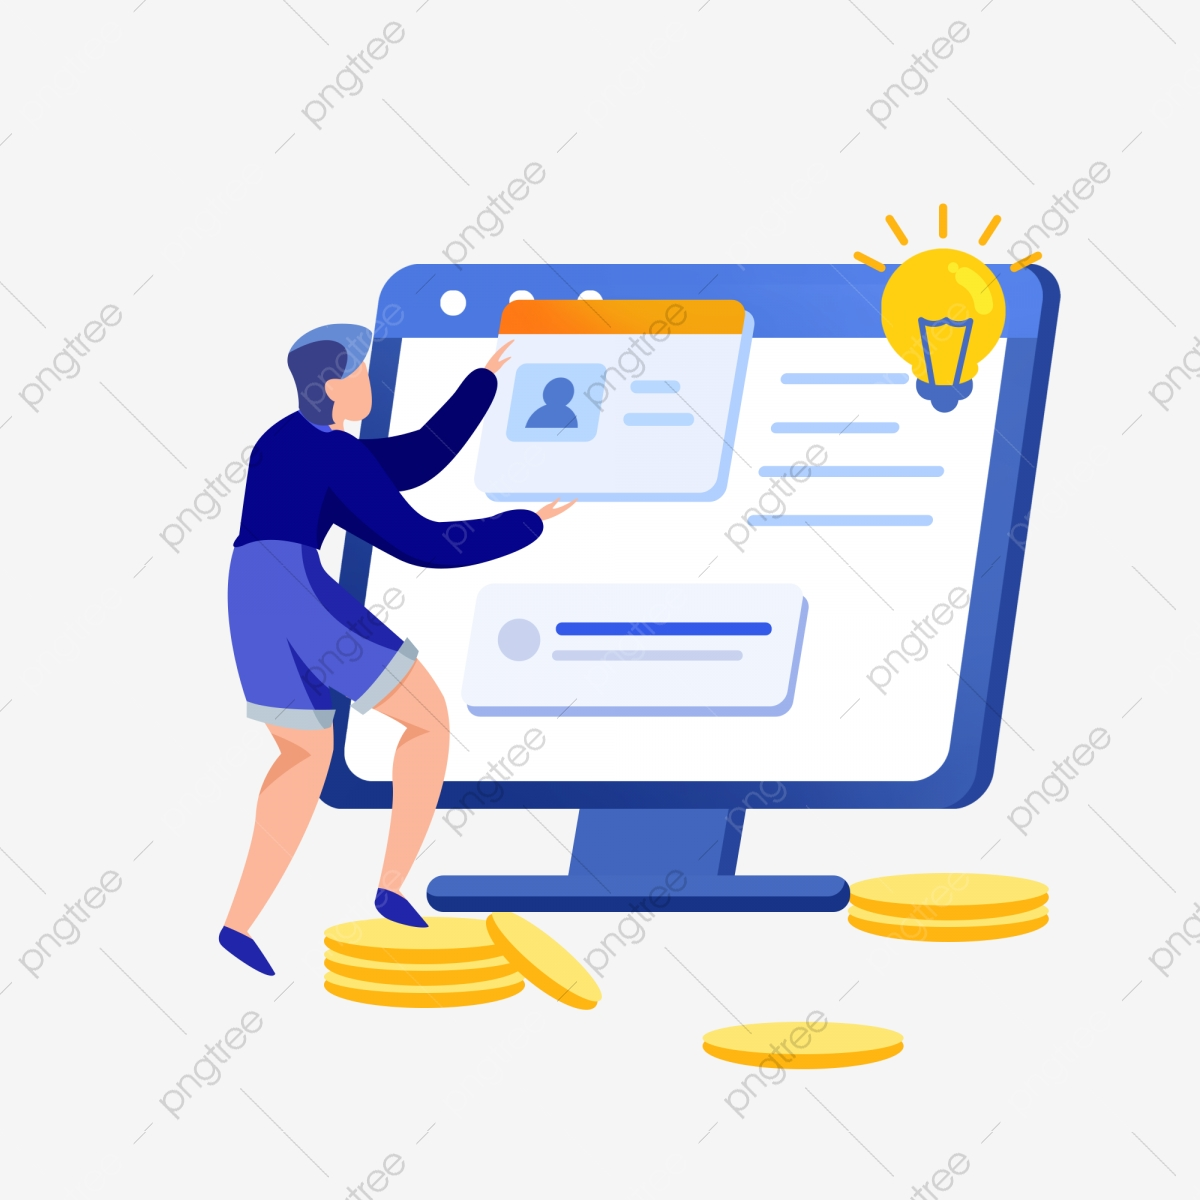 Cartoon Boy Playing Computer Free Clipart Yellow Light Bulb Cartoon Boy Cartoon Pattern Png Transparent Clipart Image And Psd File For Free Download